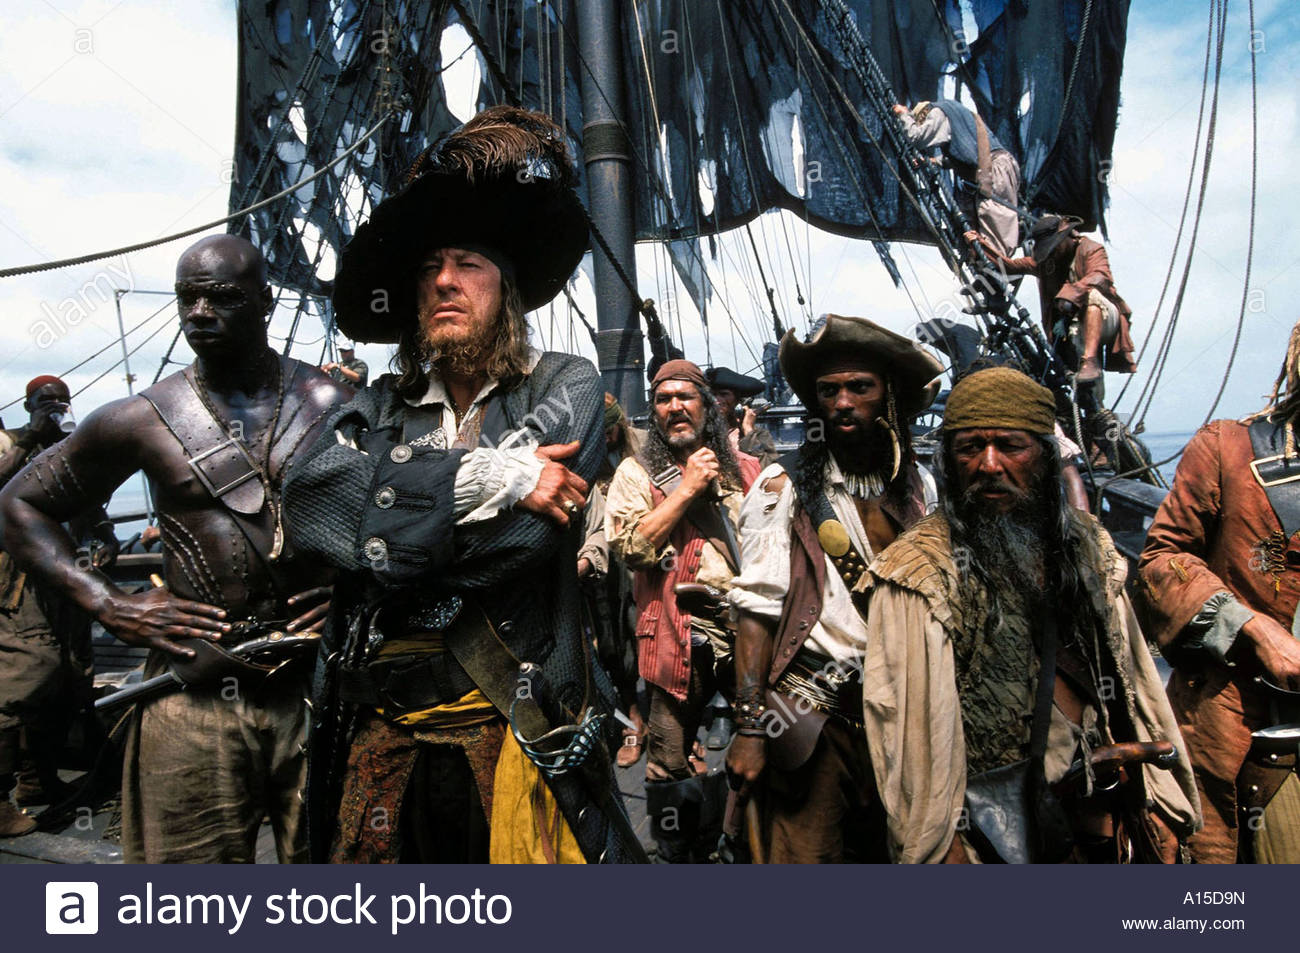 Pirates of the caribbean the curse of the Black Pearl Year 2003 Director Gore Verbinski Actor Isaac C Singleton - Stock Image